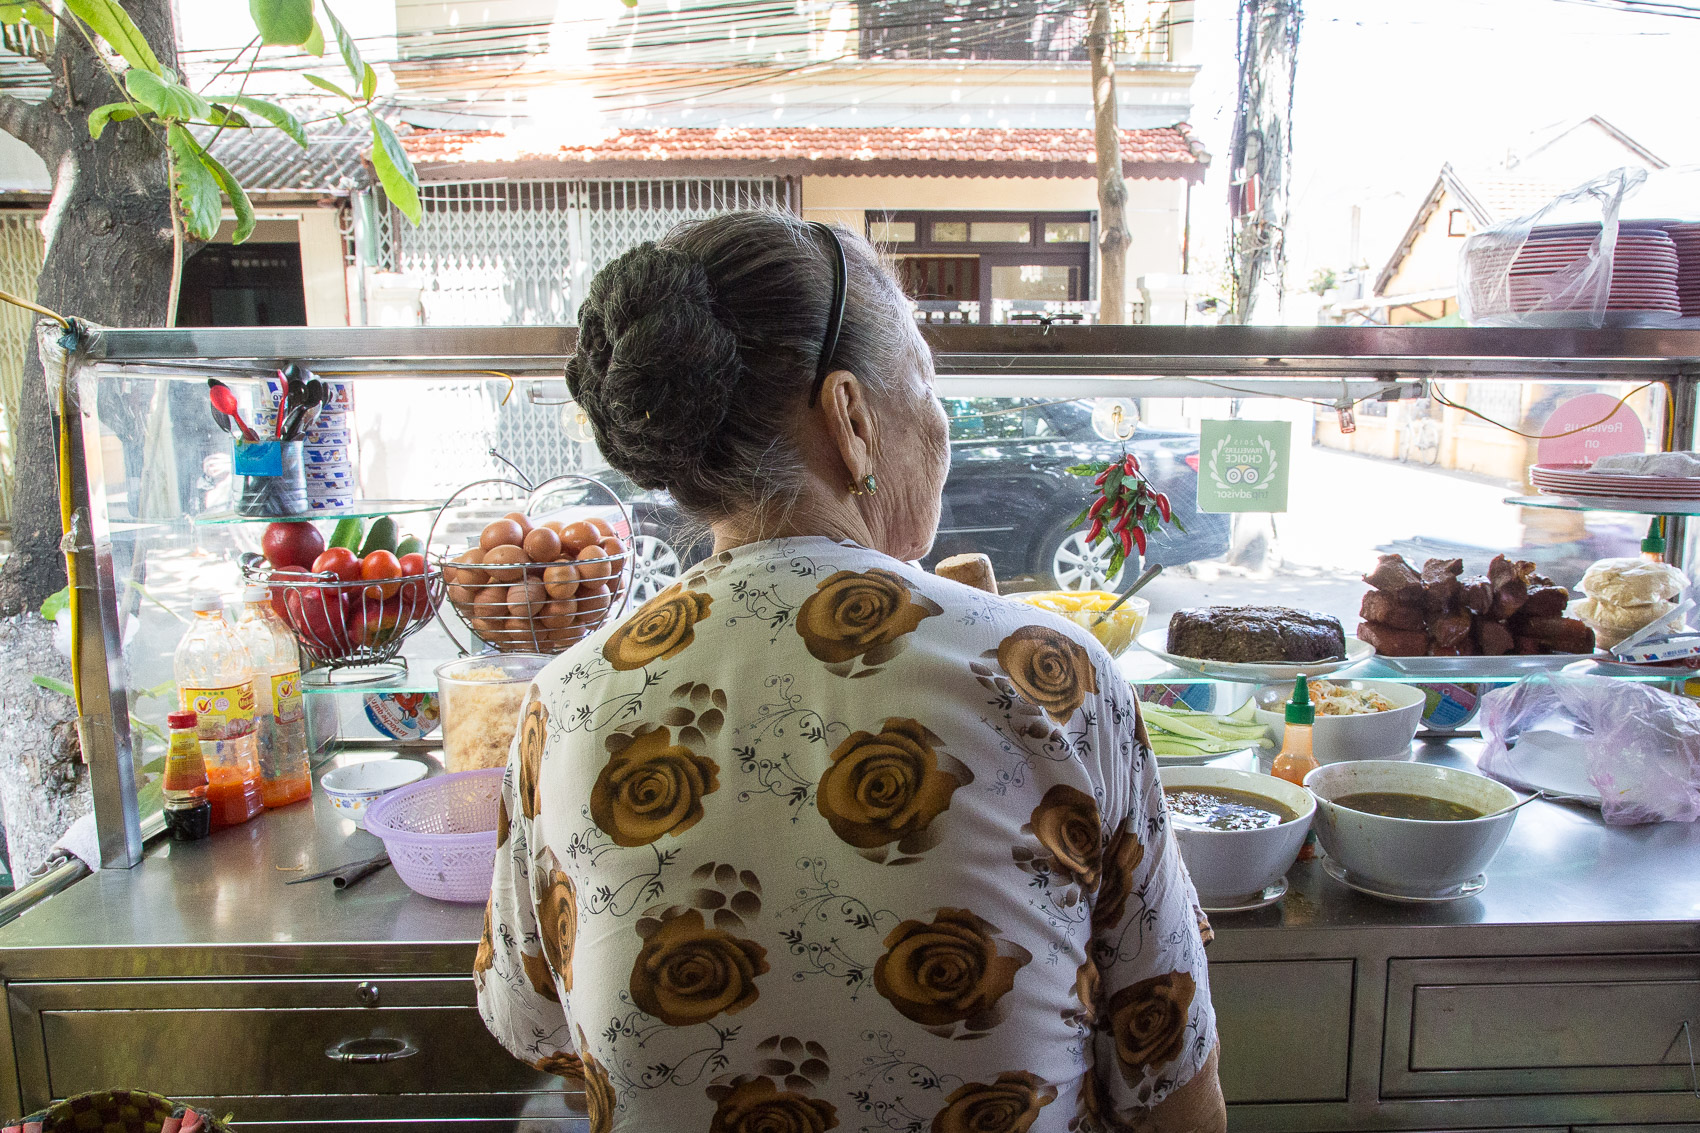 Madam Khanh generally serves in the mornings and naps in the afternoons, when her family takes over.